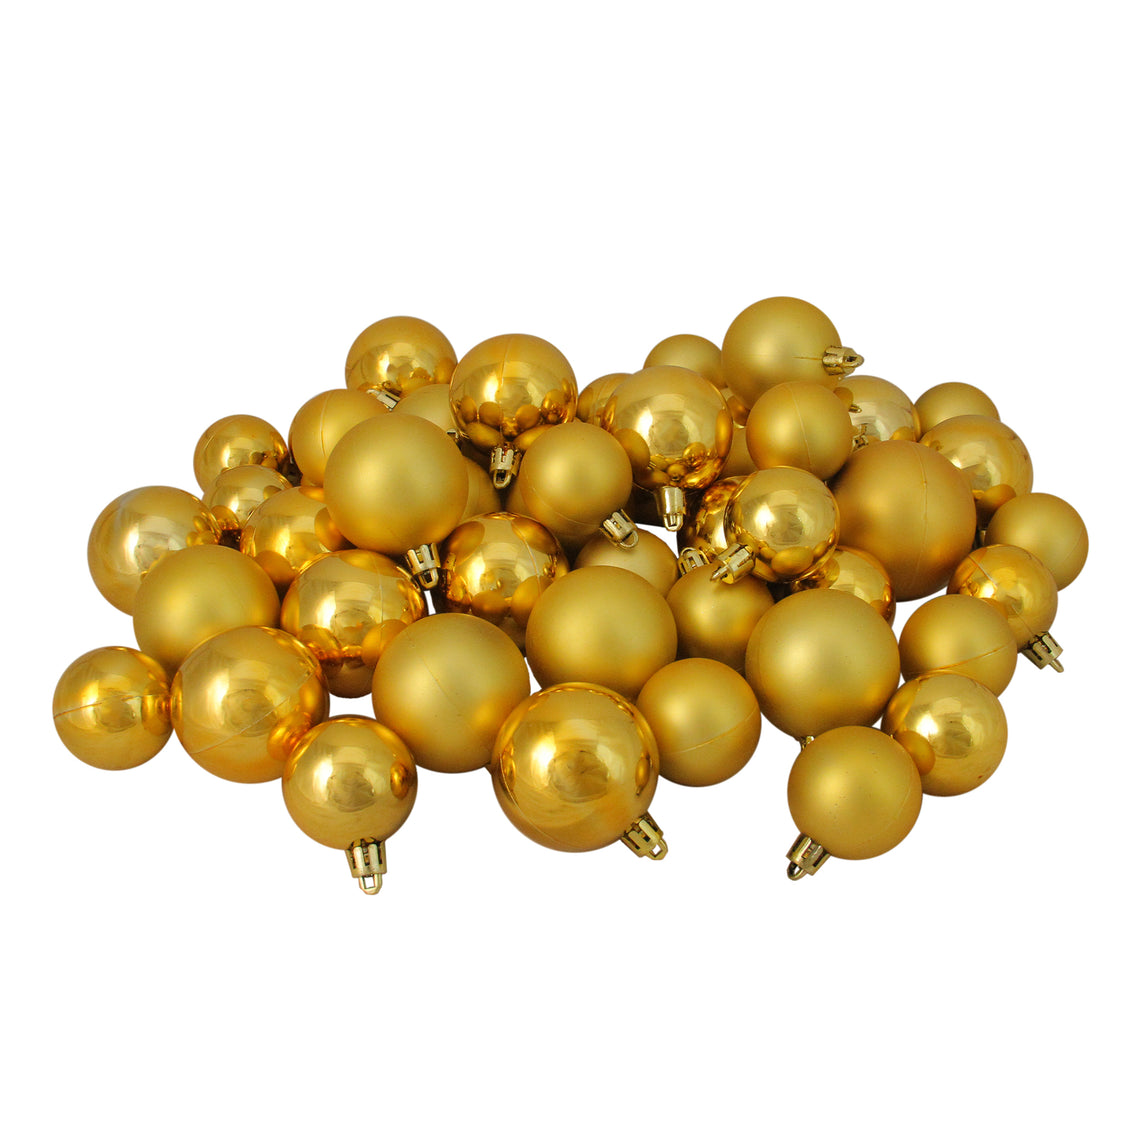 Northlight Lj35146-50Ct Vegas Gold Shatterproof Shiny And Matte Christmas Ball Ornaments 1.5